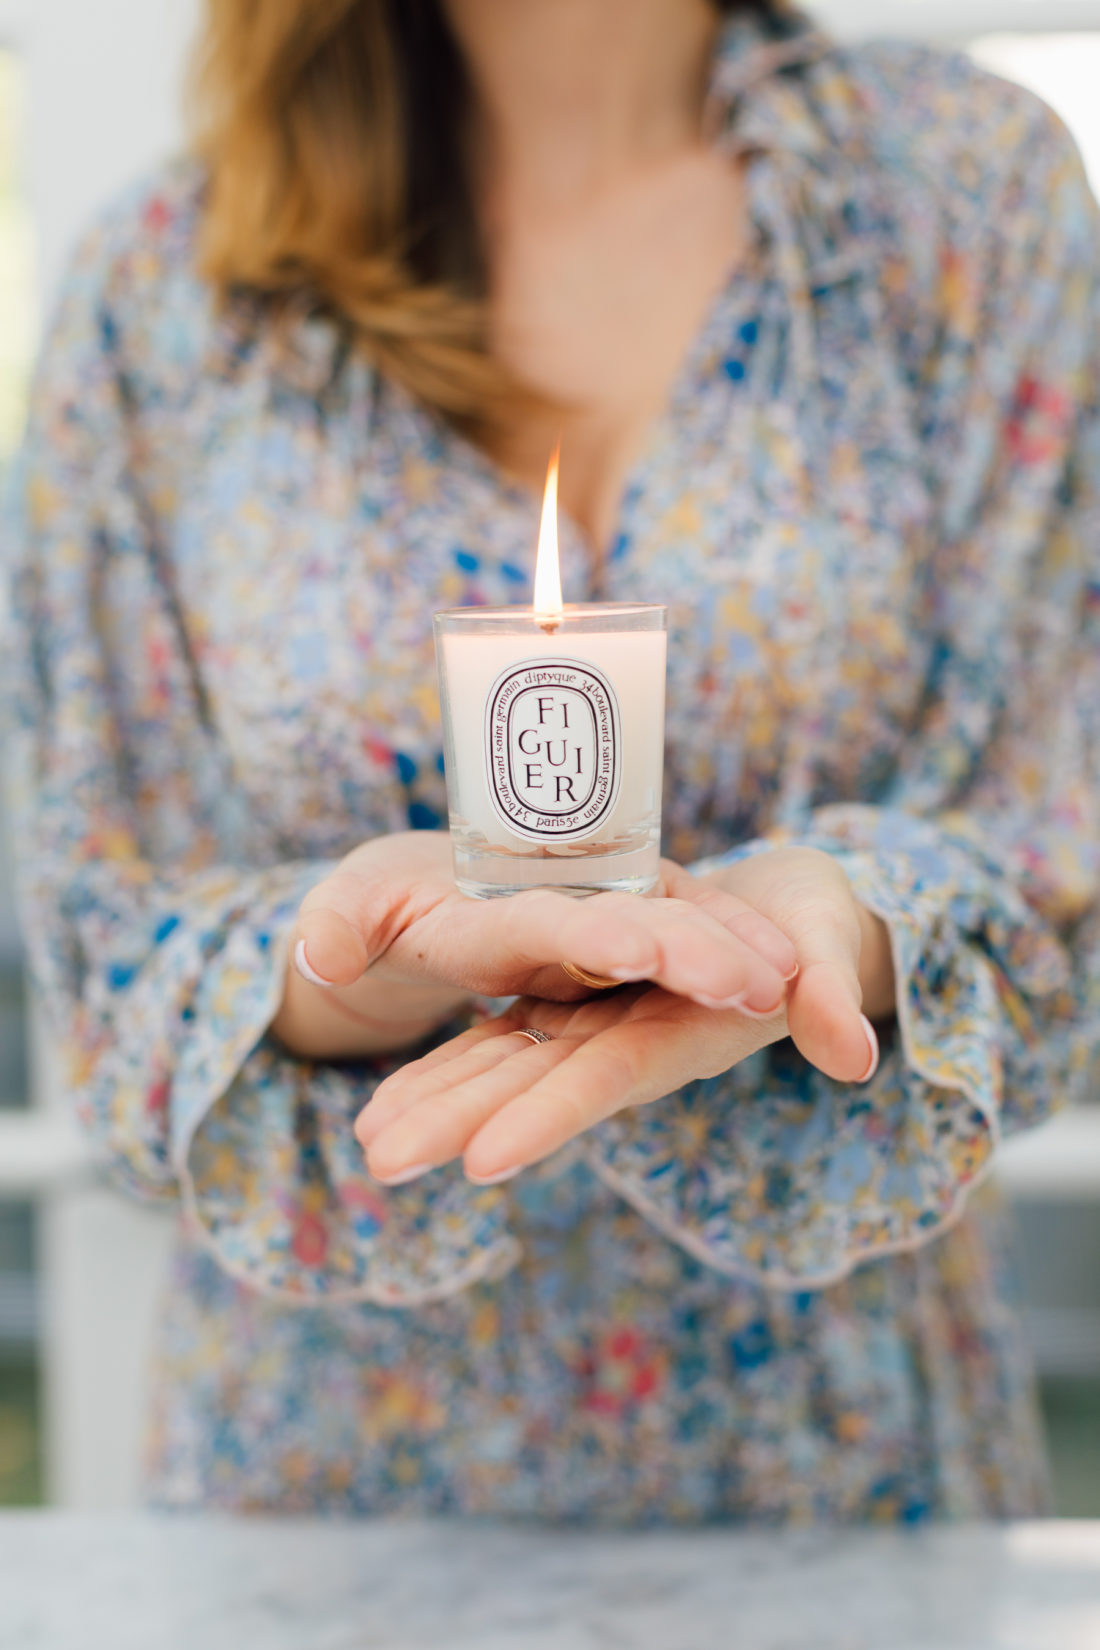 Eva Amurri Martino inhales a yummy Diptyque FIGUIER Candle in the Happily Eva After Studio